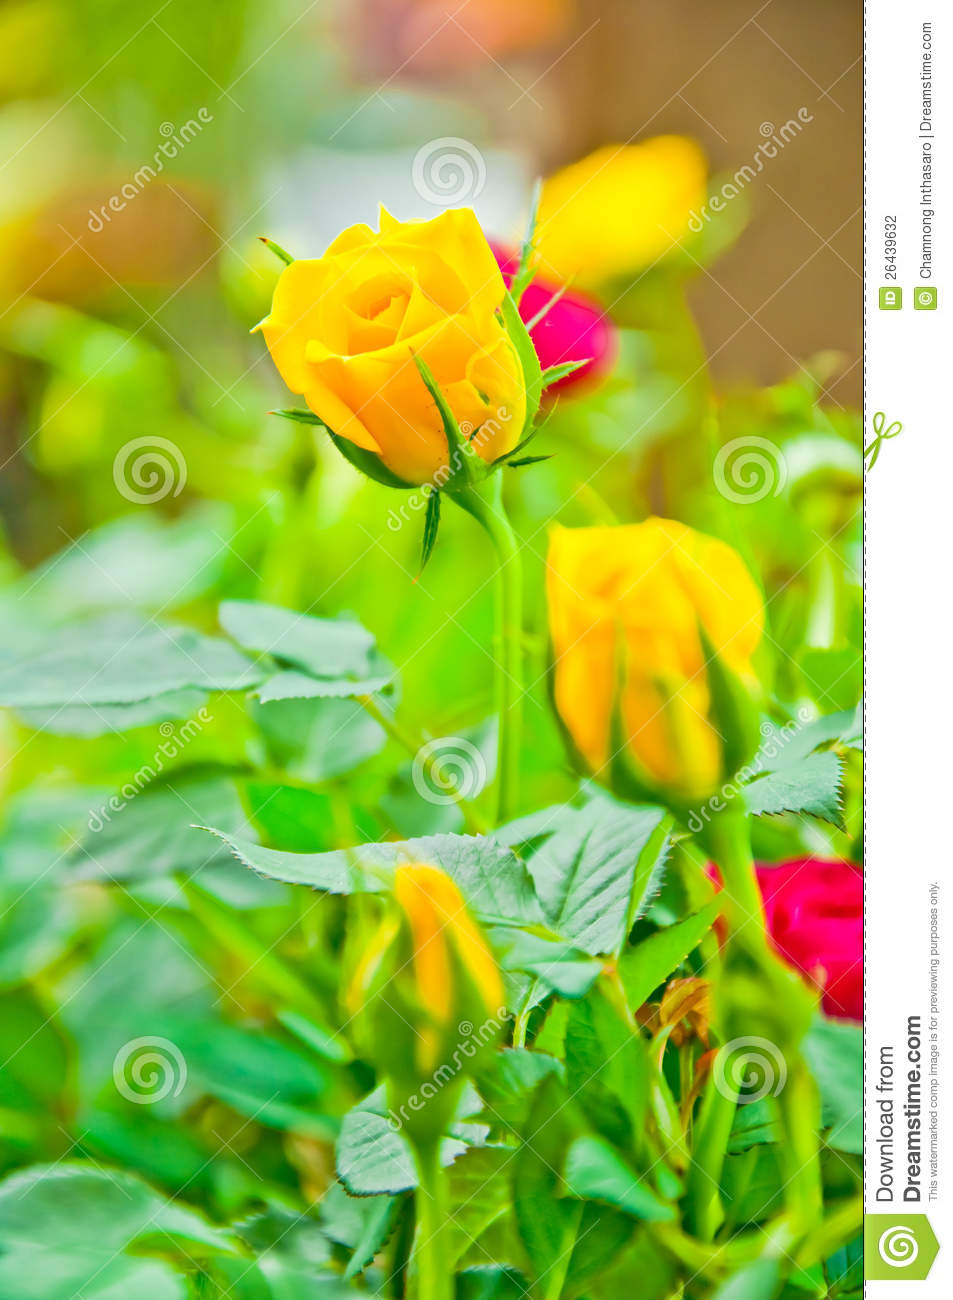 Beauty yellow rose flower early morning stock photo image of cream beauty yellow rose flower early morning mightylinksfo